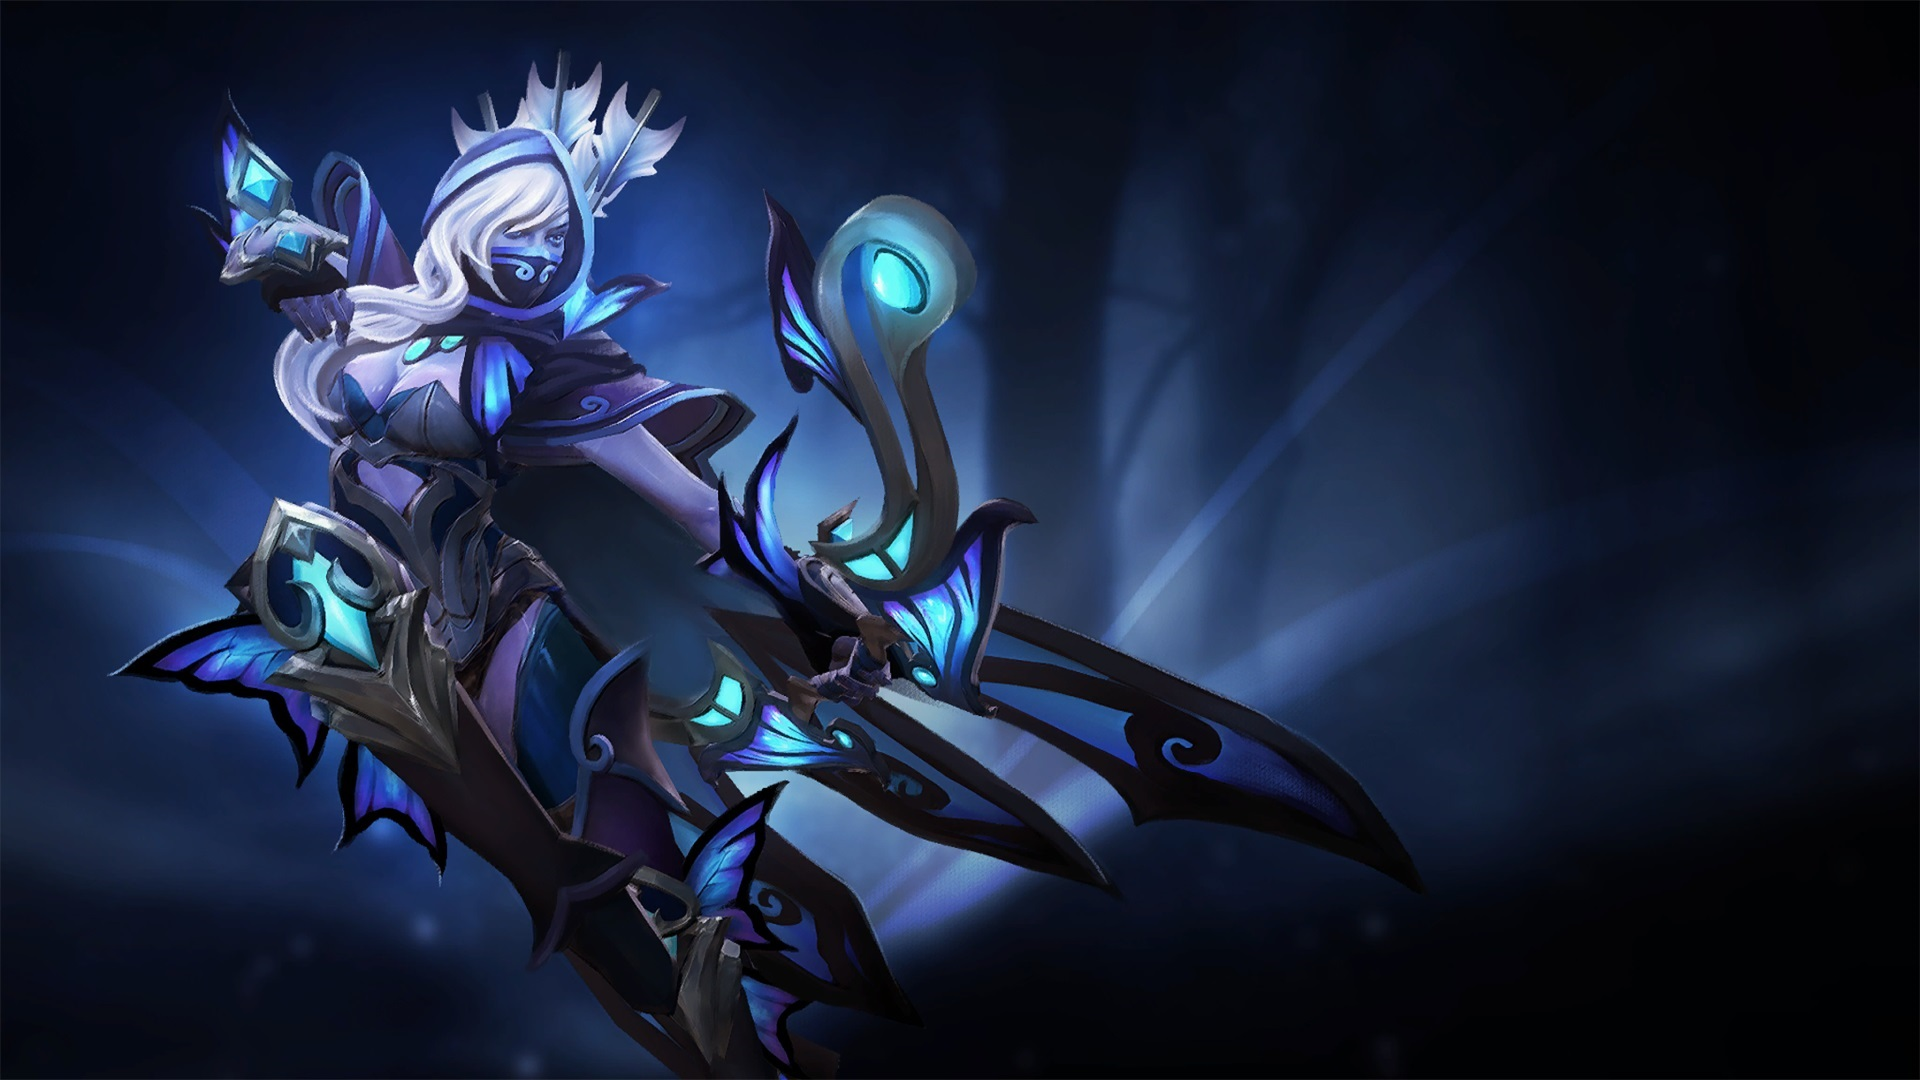 Drow Ranger Guise of the Winged Bolt wallpaper downloads Dota 2